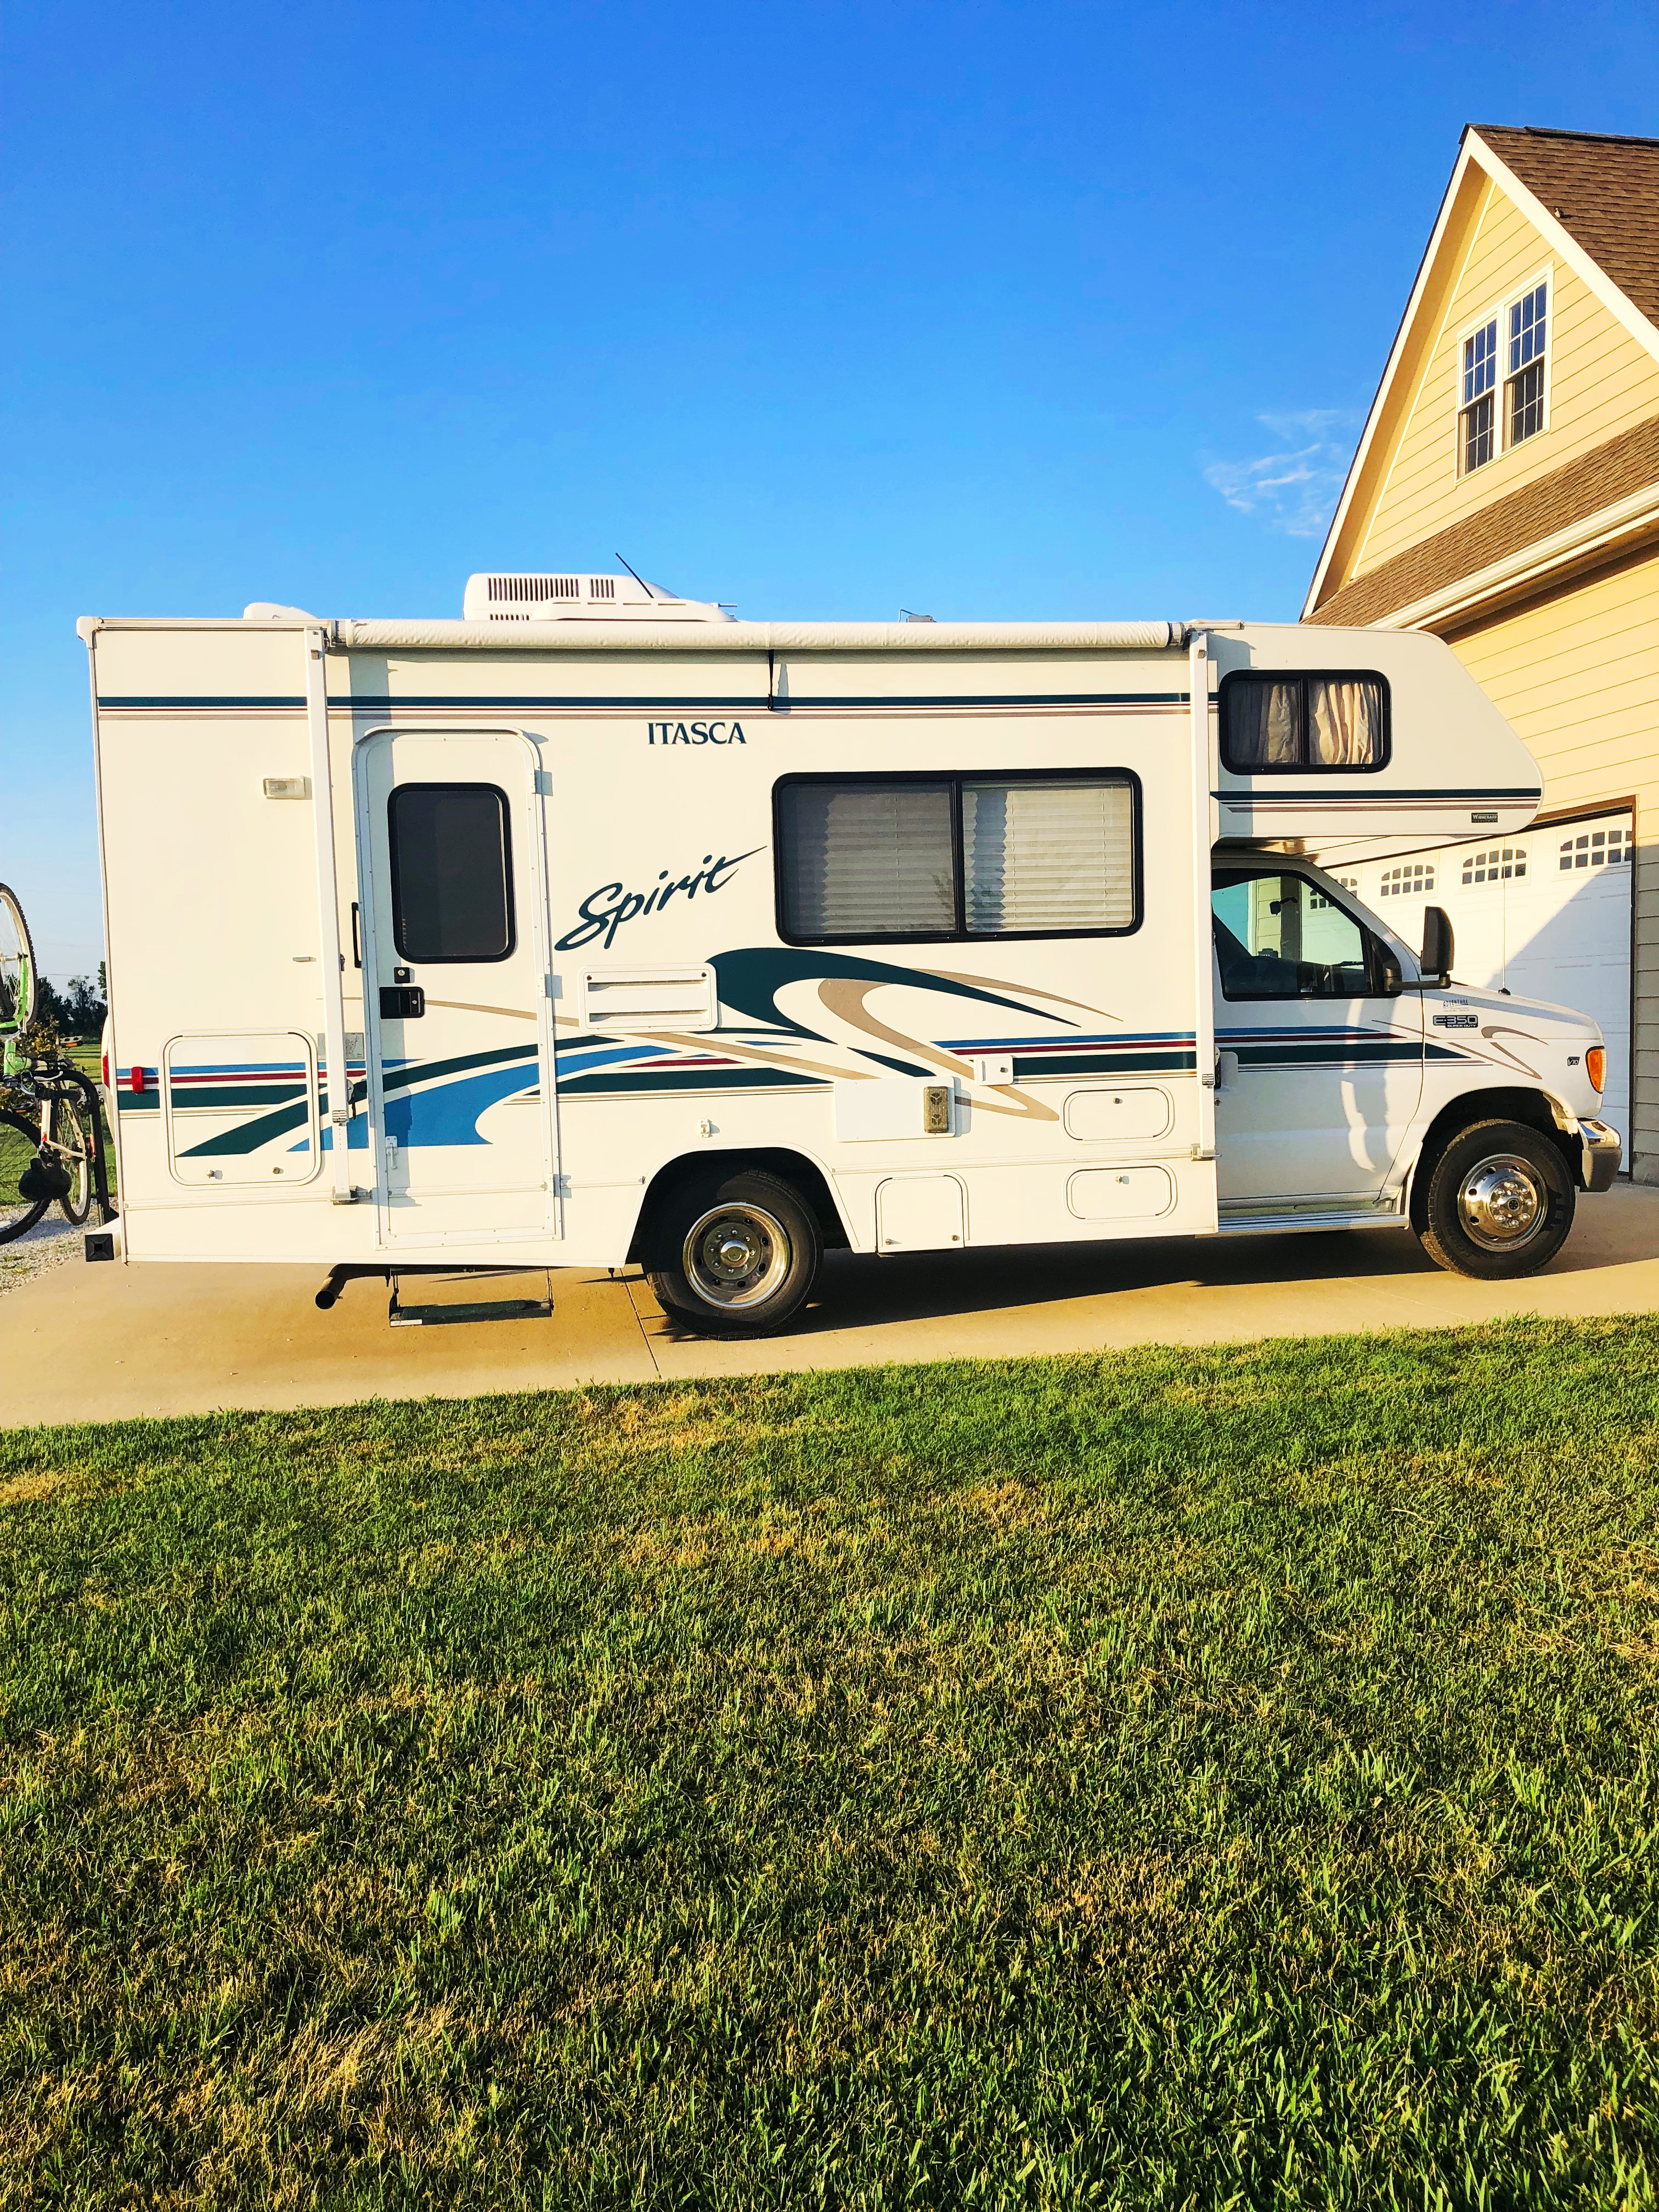 22ft Itasca Spirit. Perfect for two or small family.  Available for weekly and monthly rental. Please contact me. I'll be adding more photos showing awning open and entertainment set up. It's been too windy. . Itasca Spirit 2000